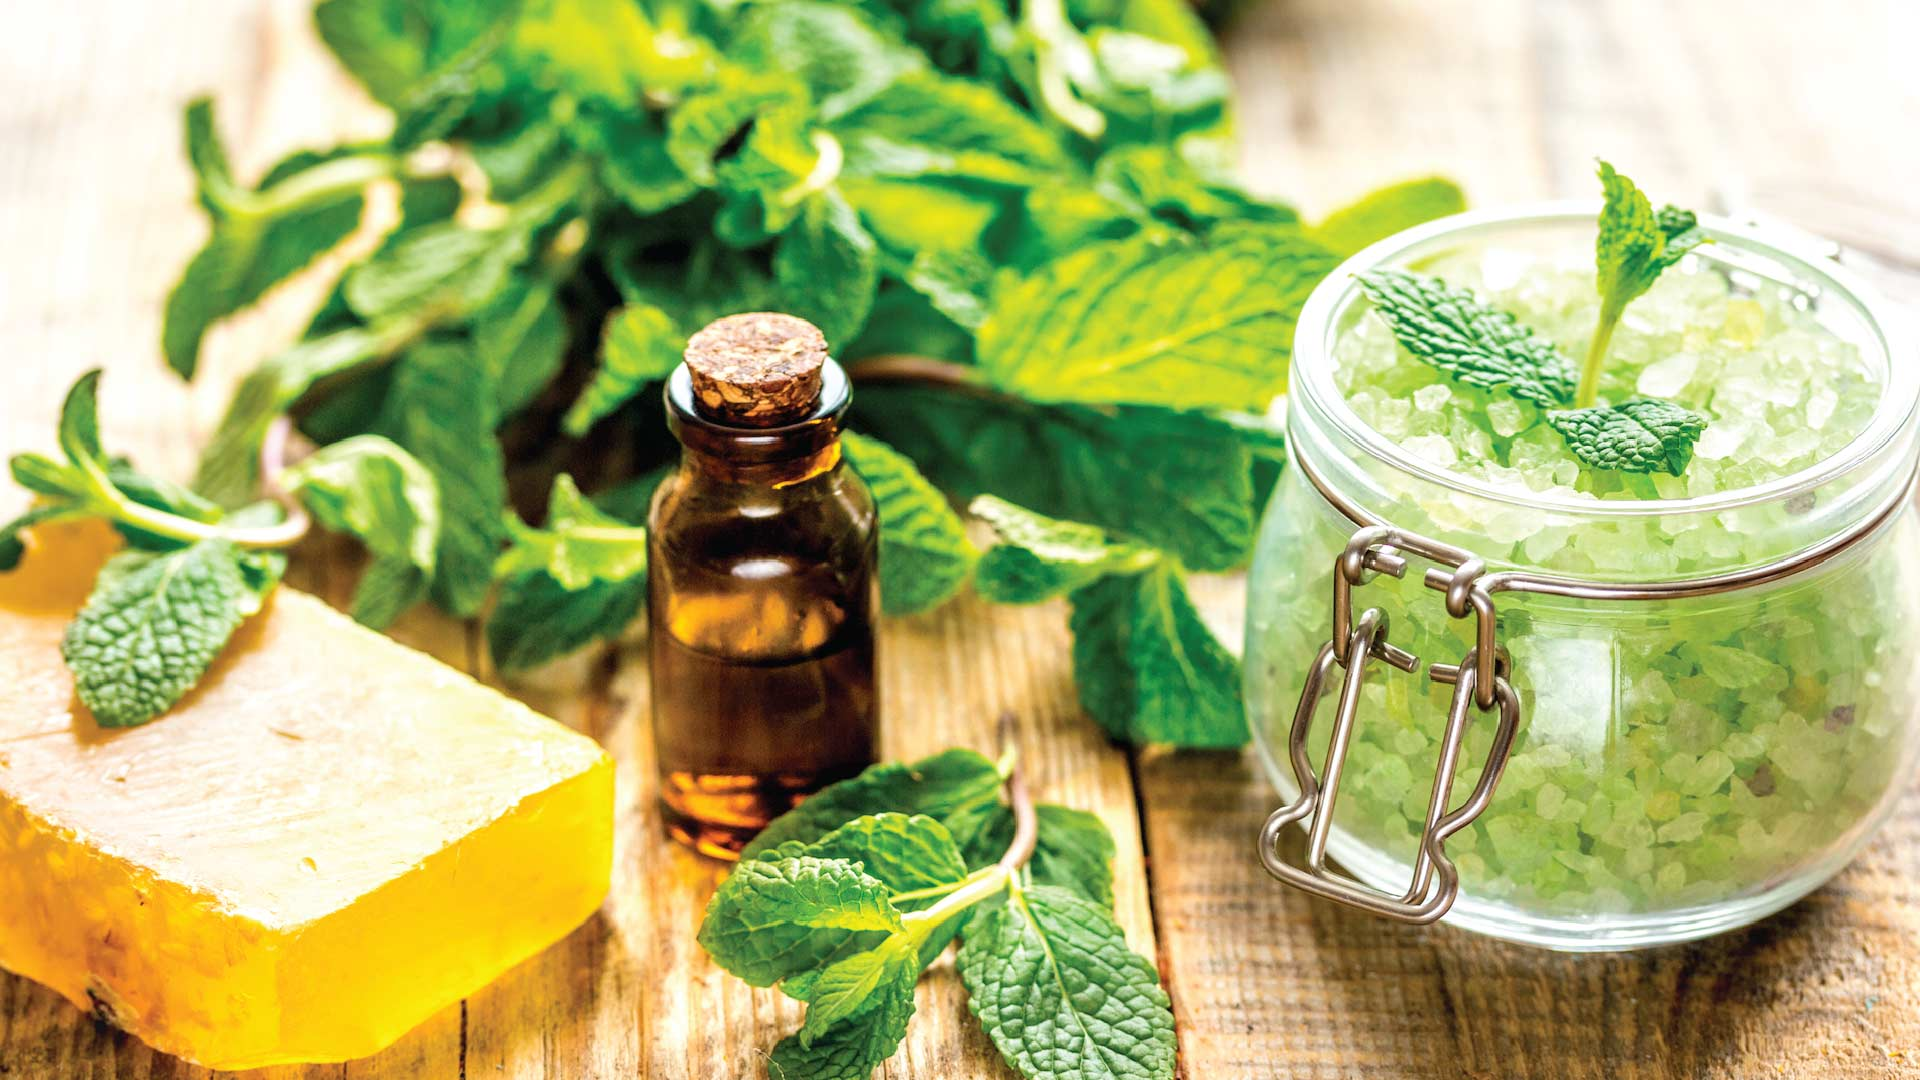 You complete diy cbd skincare routine